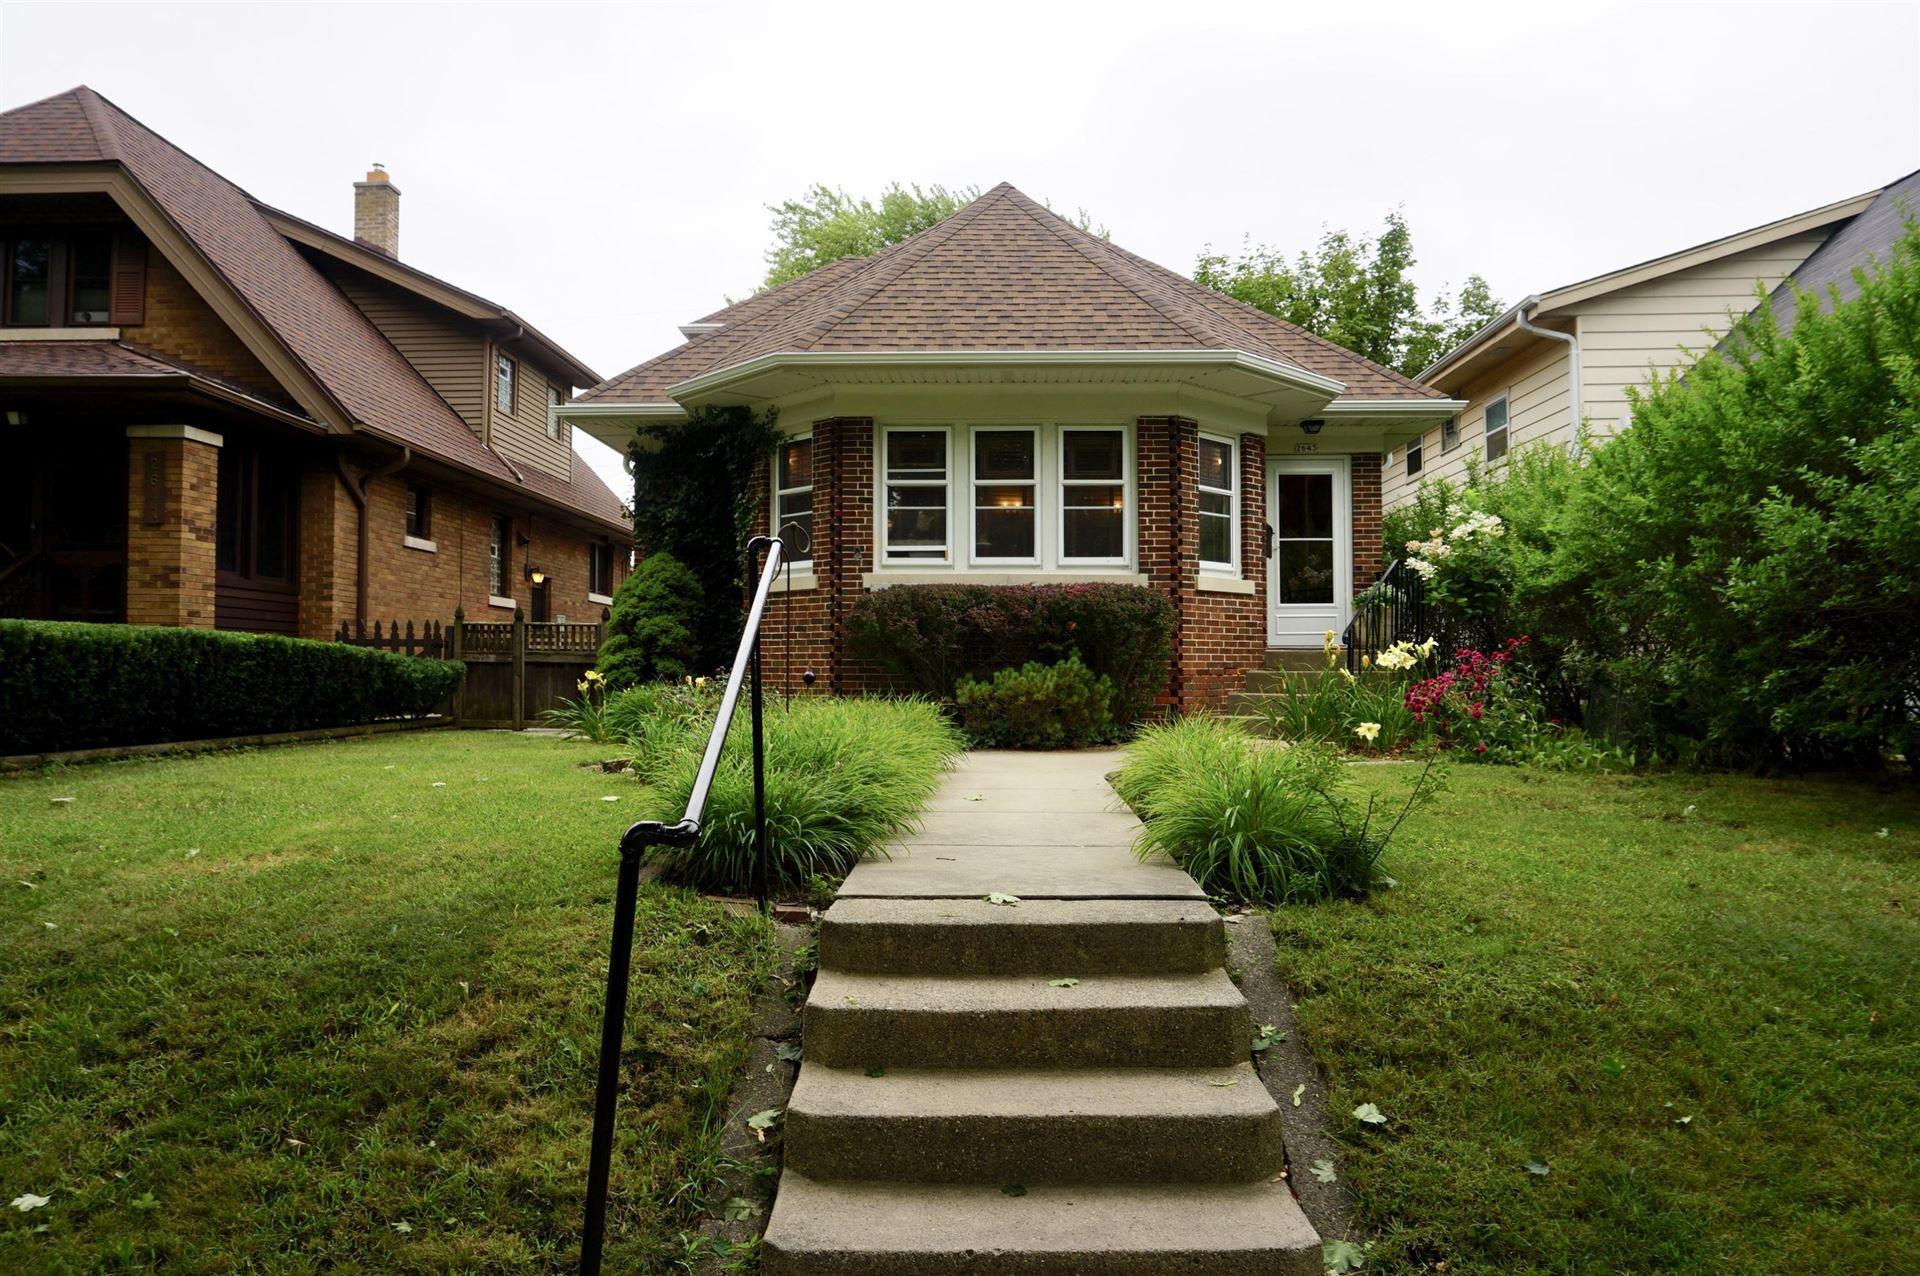 2643 S Linebarger Ter, Milwaukee, WI 53207 - #: 1702410